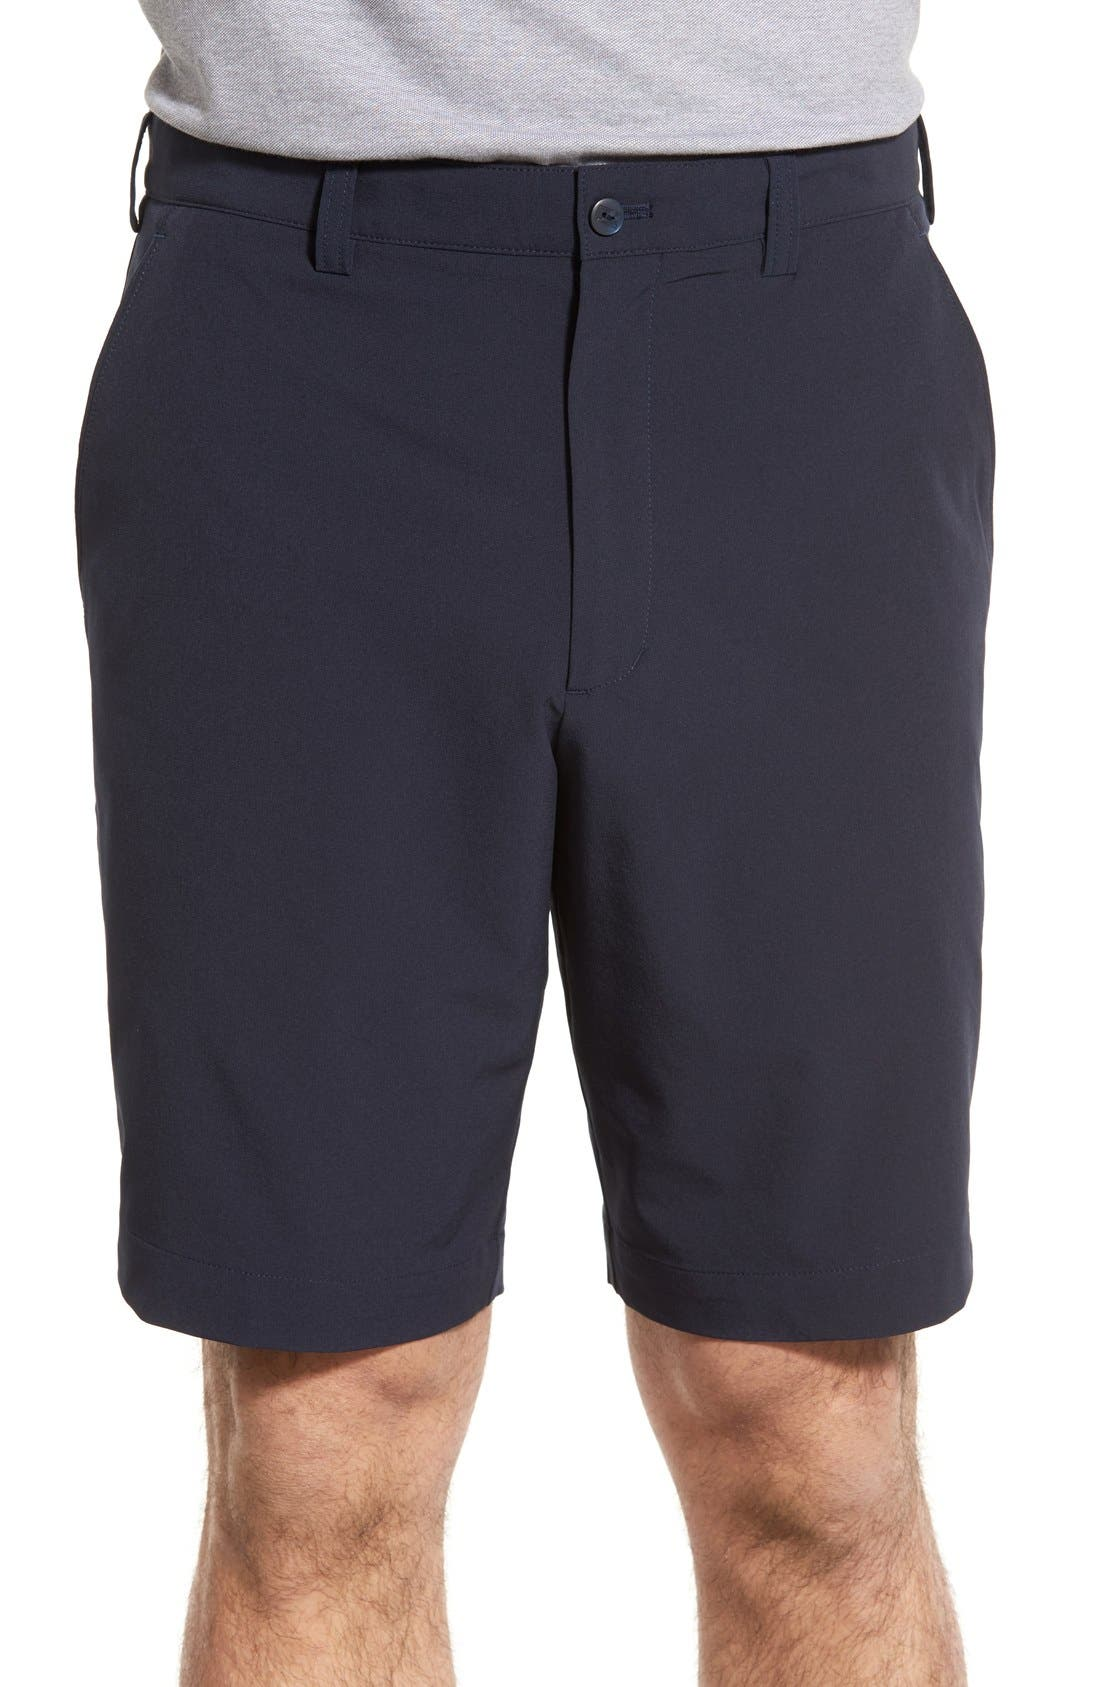 CUTTER & BUCK,                             'Bainbridge' DryTec Shorts,                             Main thumbnail 1, color,                             NAVY BLUE